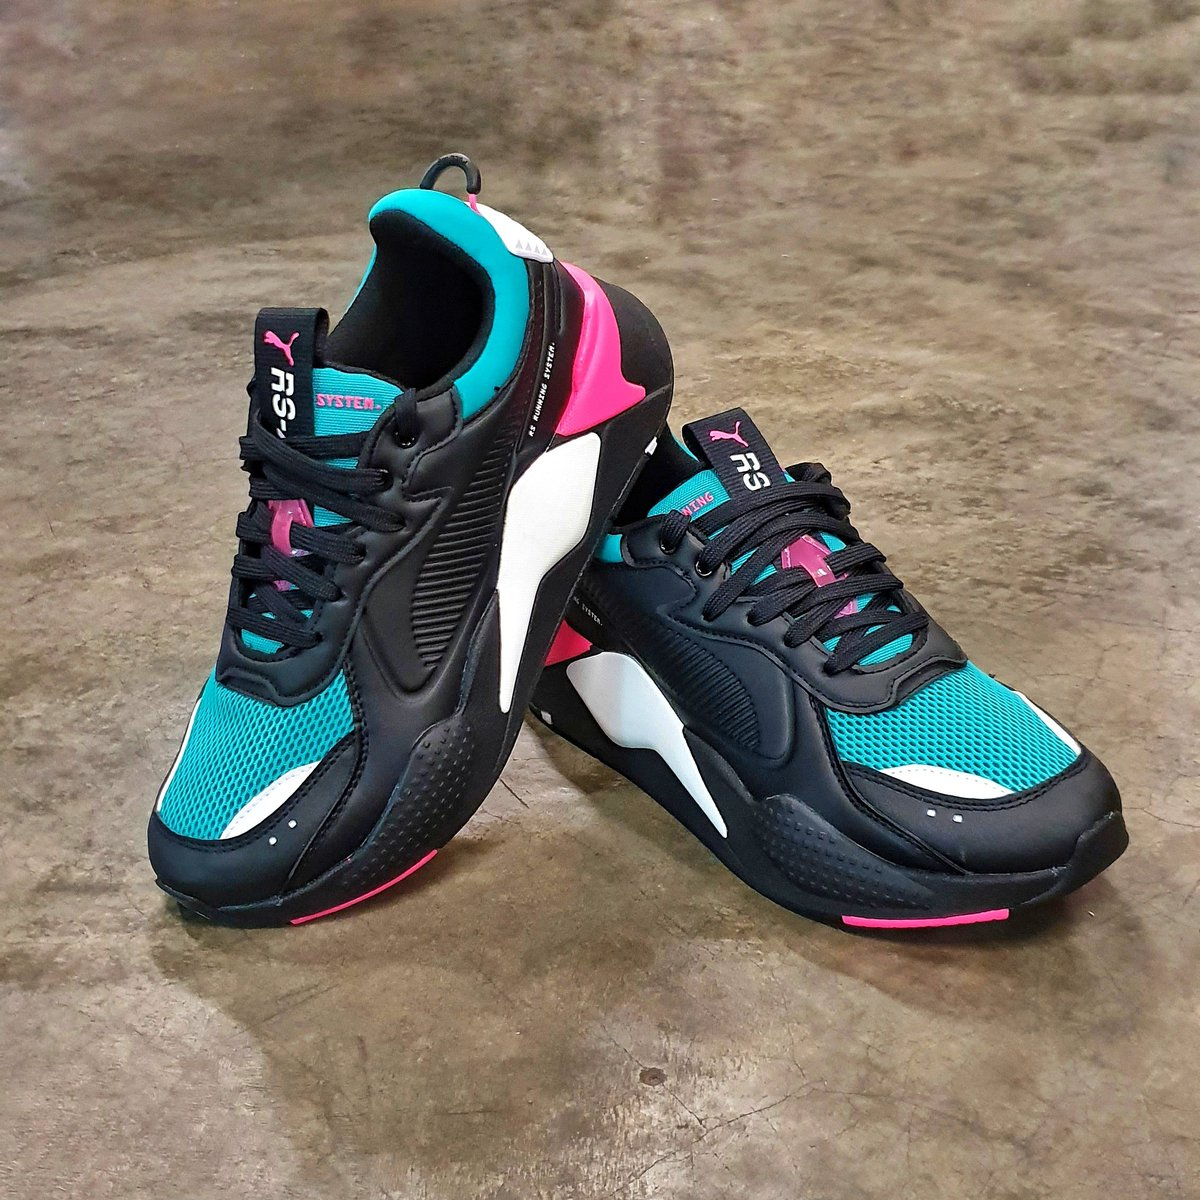 . PUMA . RS-X Master I R1999 I 6 - 10 @PUMASouthAfrica have absolitely mastered the reinvention of the retro trainer. Available at select TAPE stores.  #officiallytape#puma#snobshots #streetwear #menswear #kicks#essentials#90s#classics#menswear#winterwear#sneakerspic.twitter.com/OXnI28k8HI